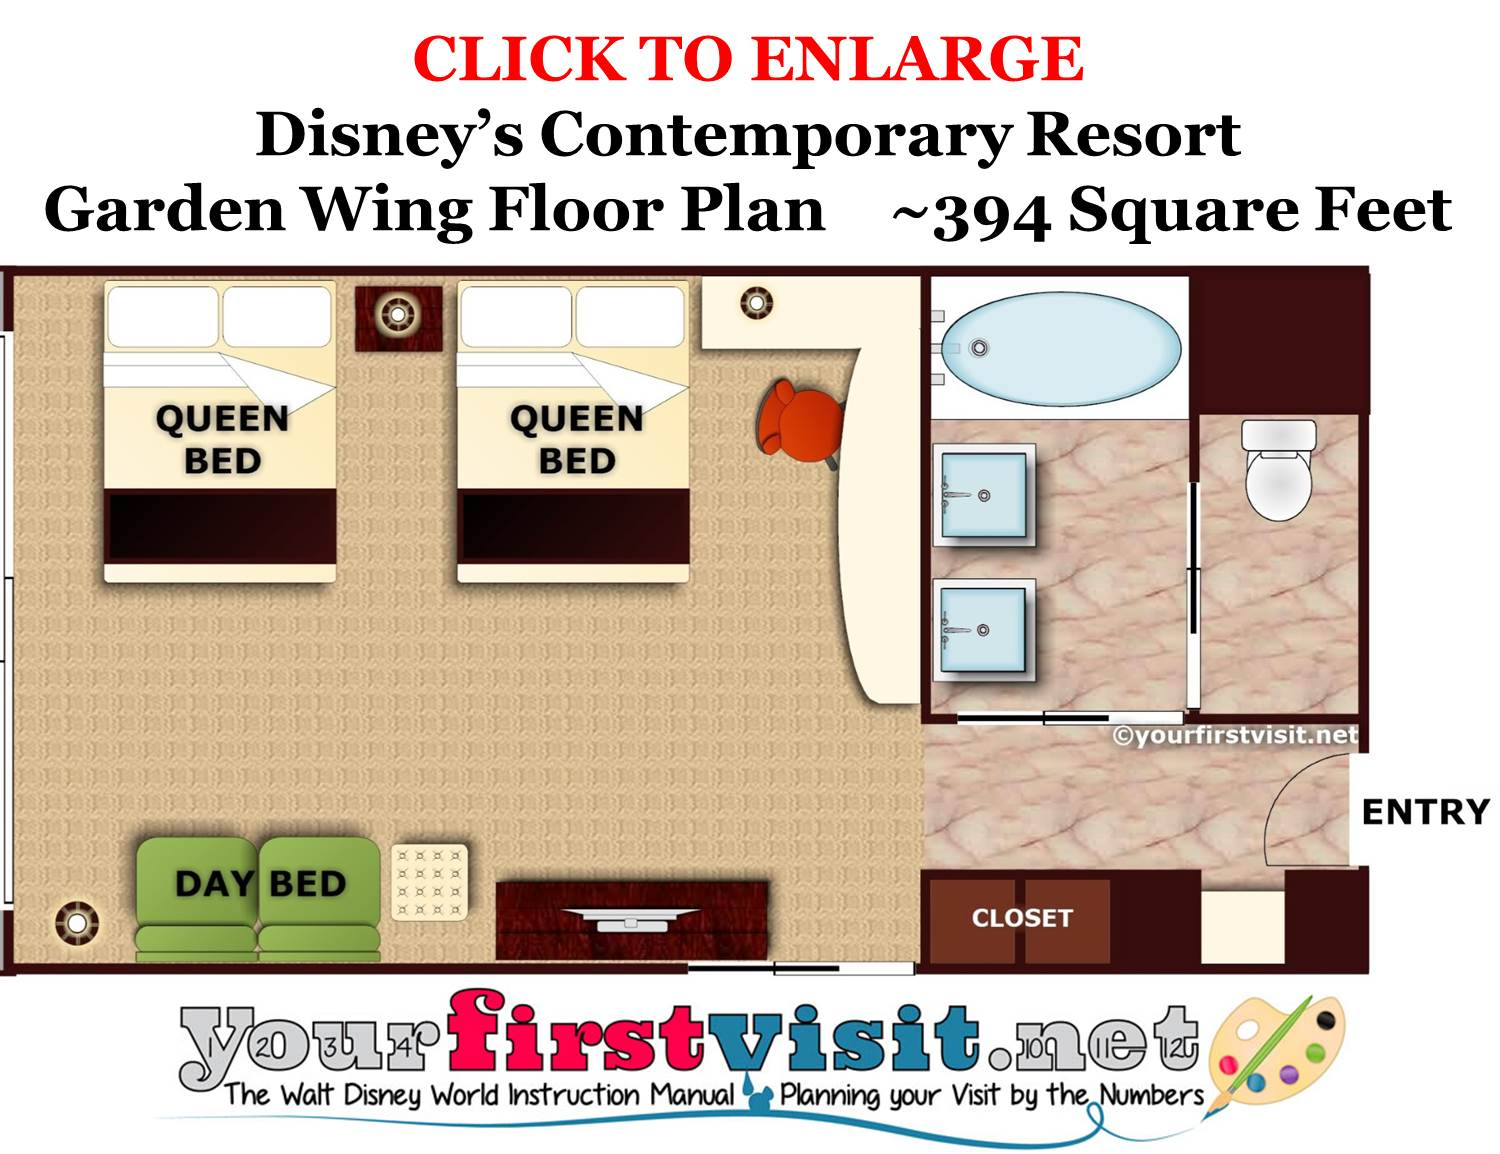 Garden Wing Floor Plan Disney's Contemporary Resort from yourfirstvisit.net